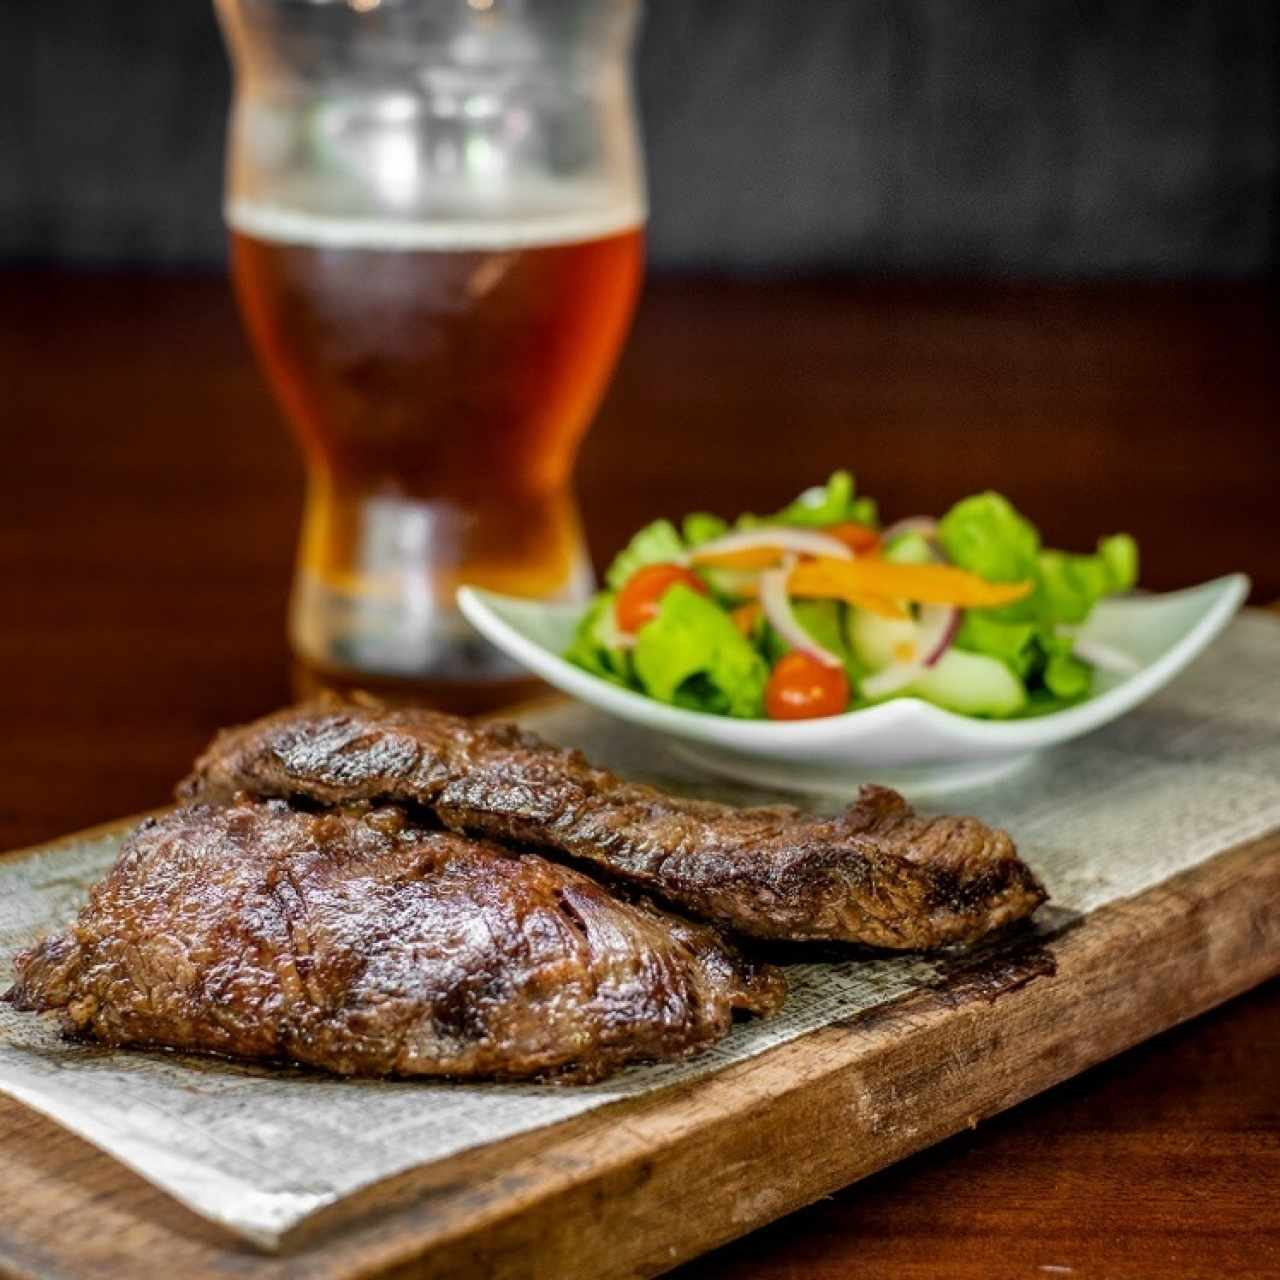 USDA skirt steak